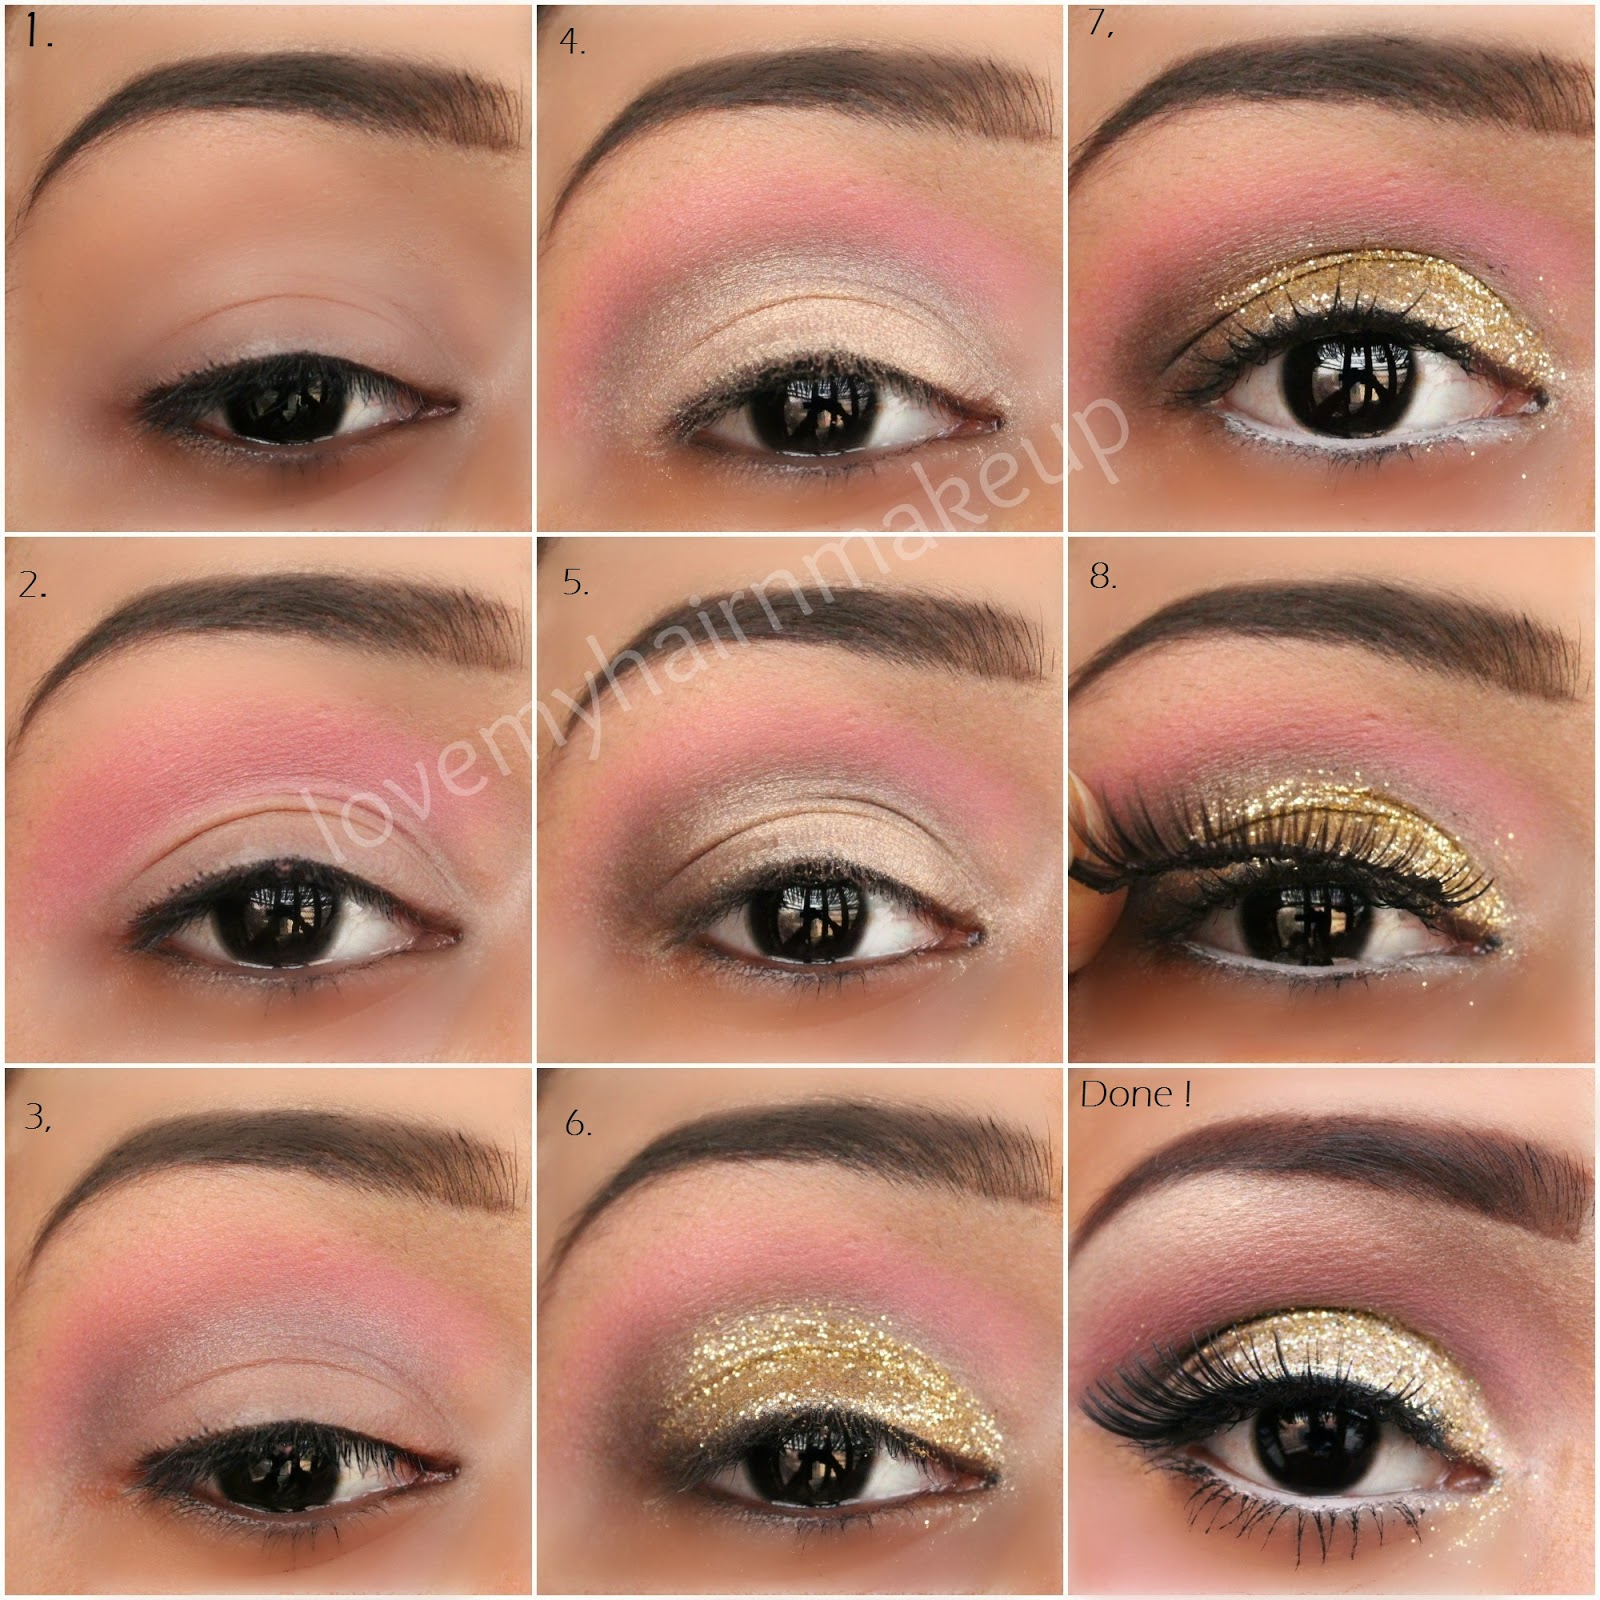 How To Do Gold Glitter Eye Makeup Tutorial